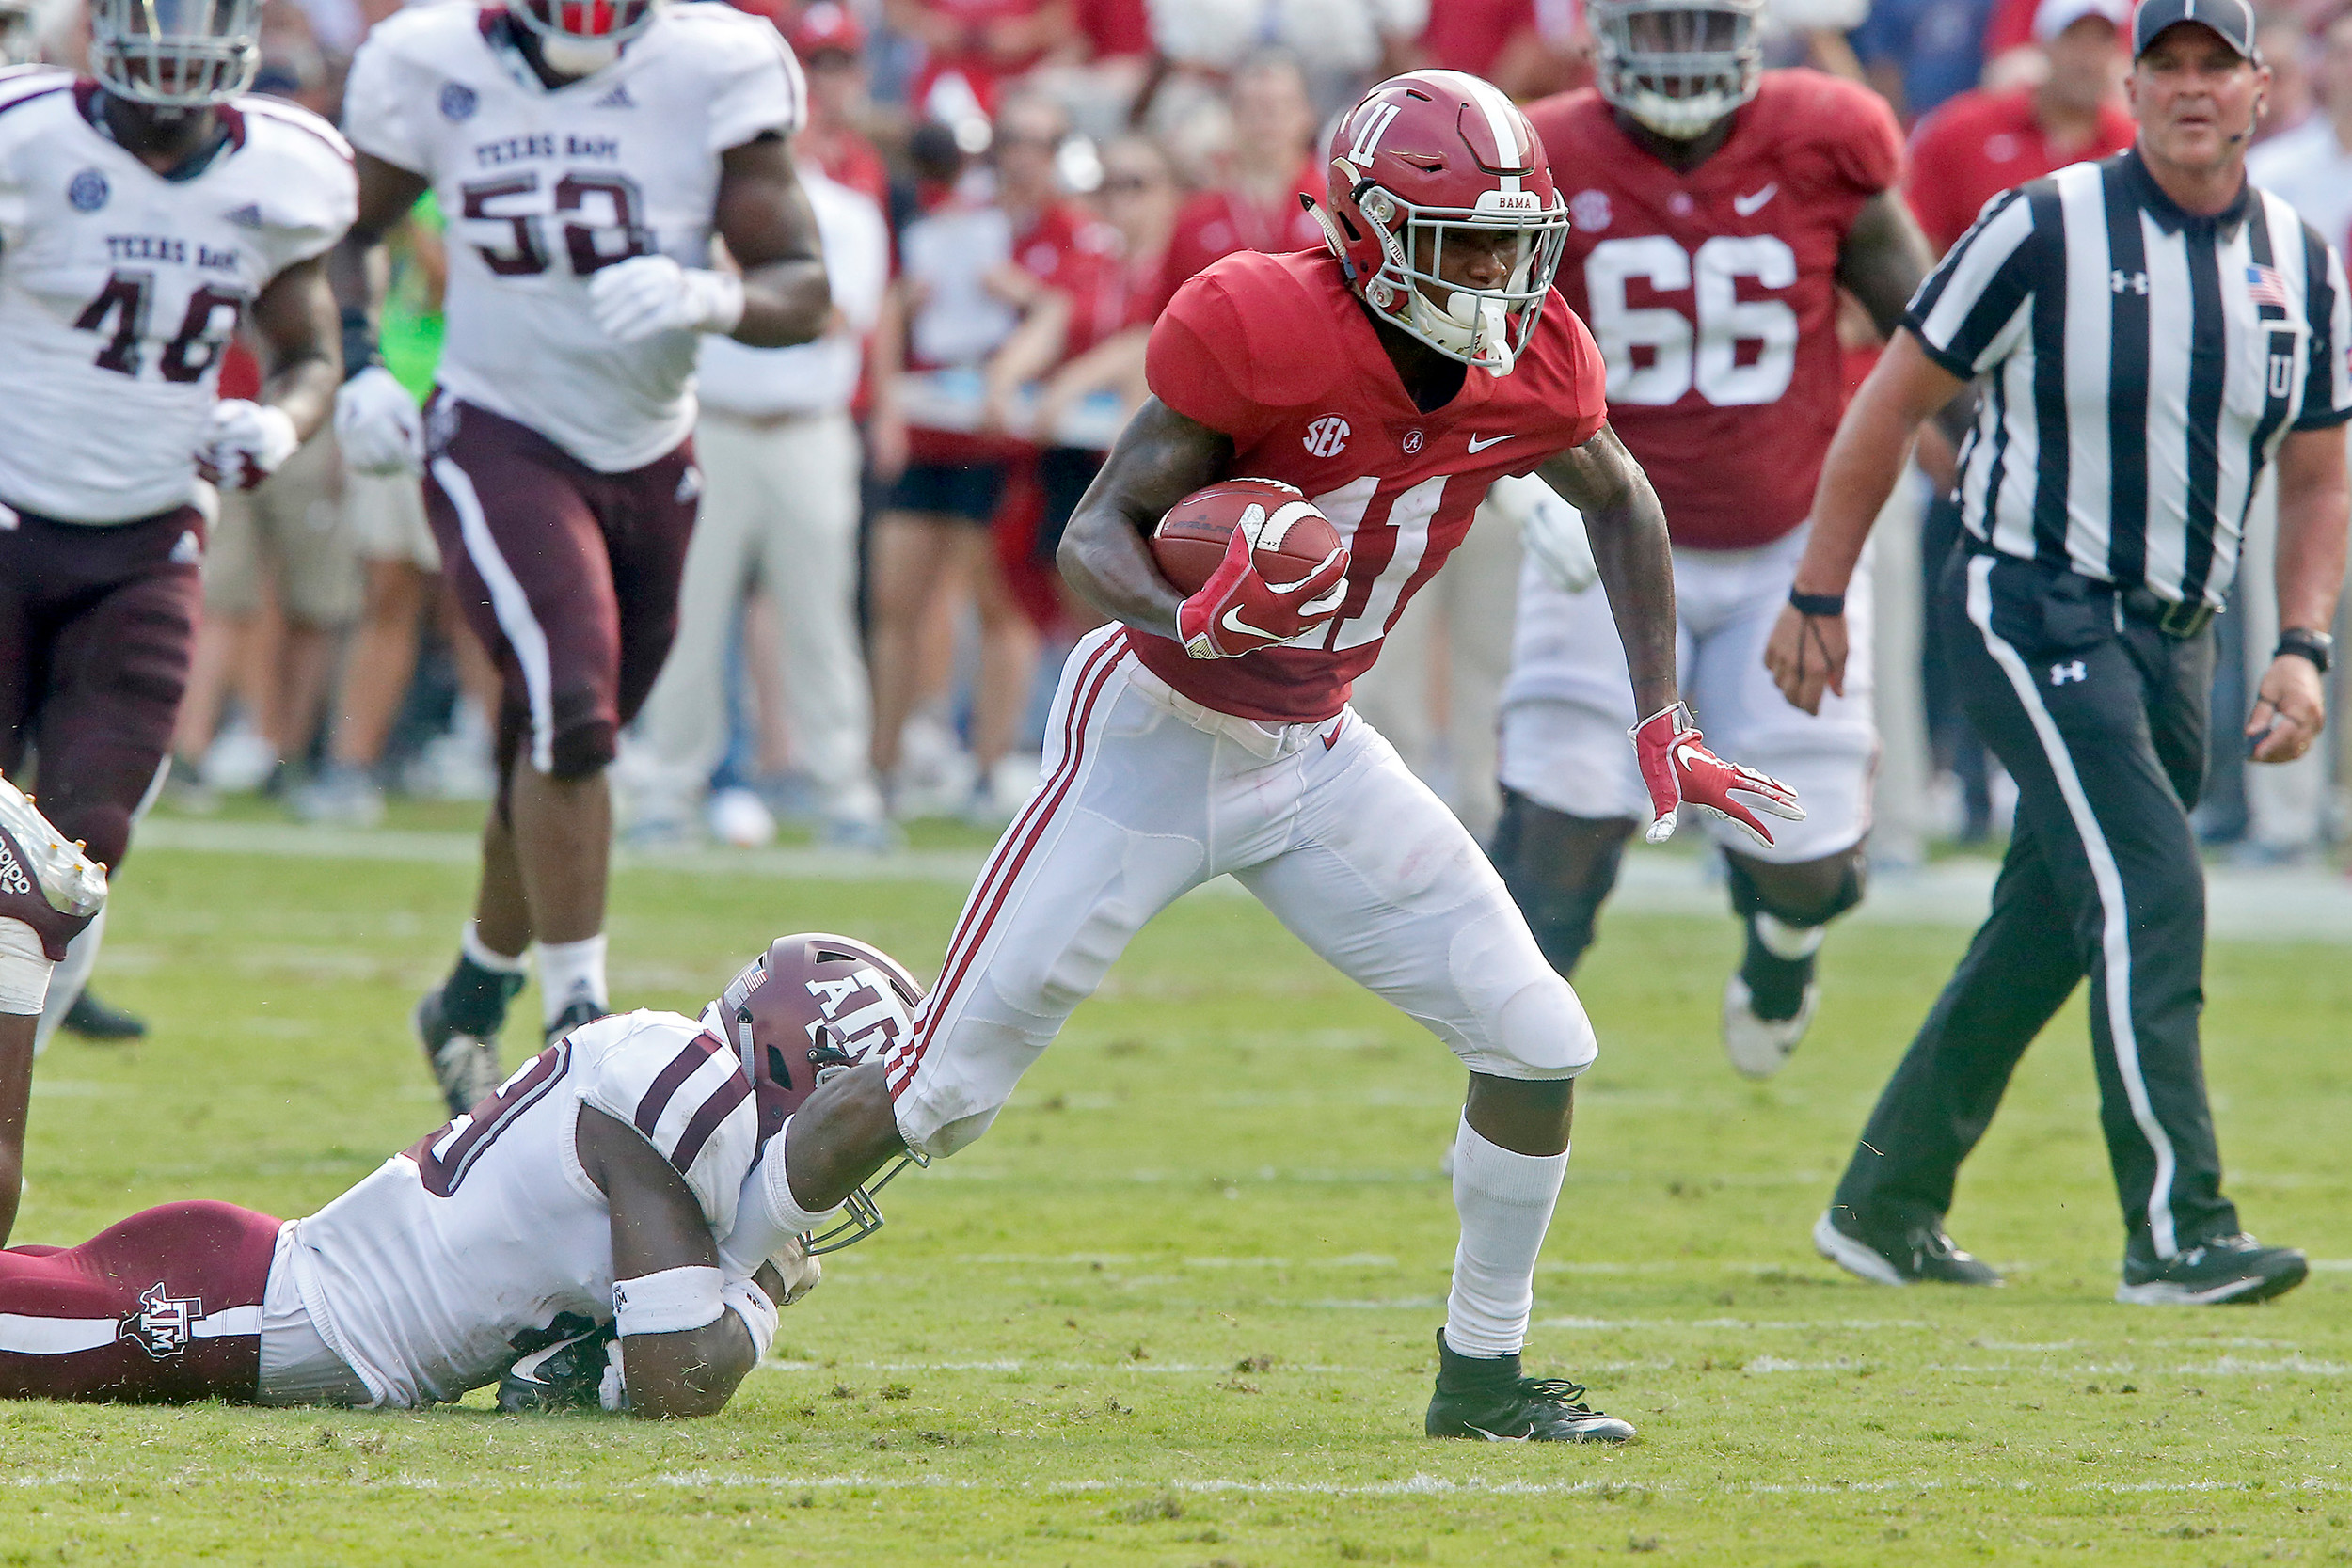 Alabama Crimson Tide wide receiver Henry Ruggs III (11) makes a first down after a reception during the game between the Texas A&M Aggies and the University of Alabama Crimson Tide at Bryant-Denny Stadium.  Jason Clark / Daily Mountain Eagle